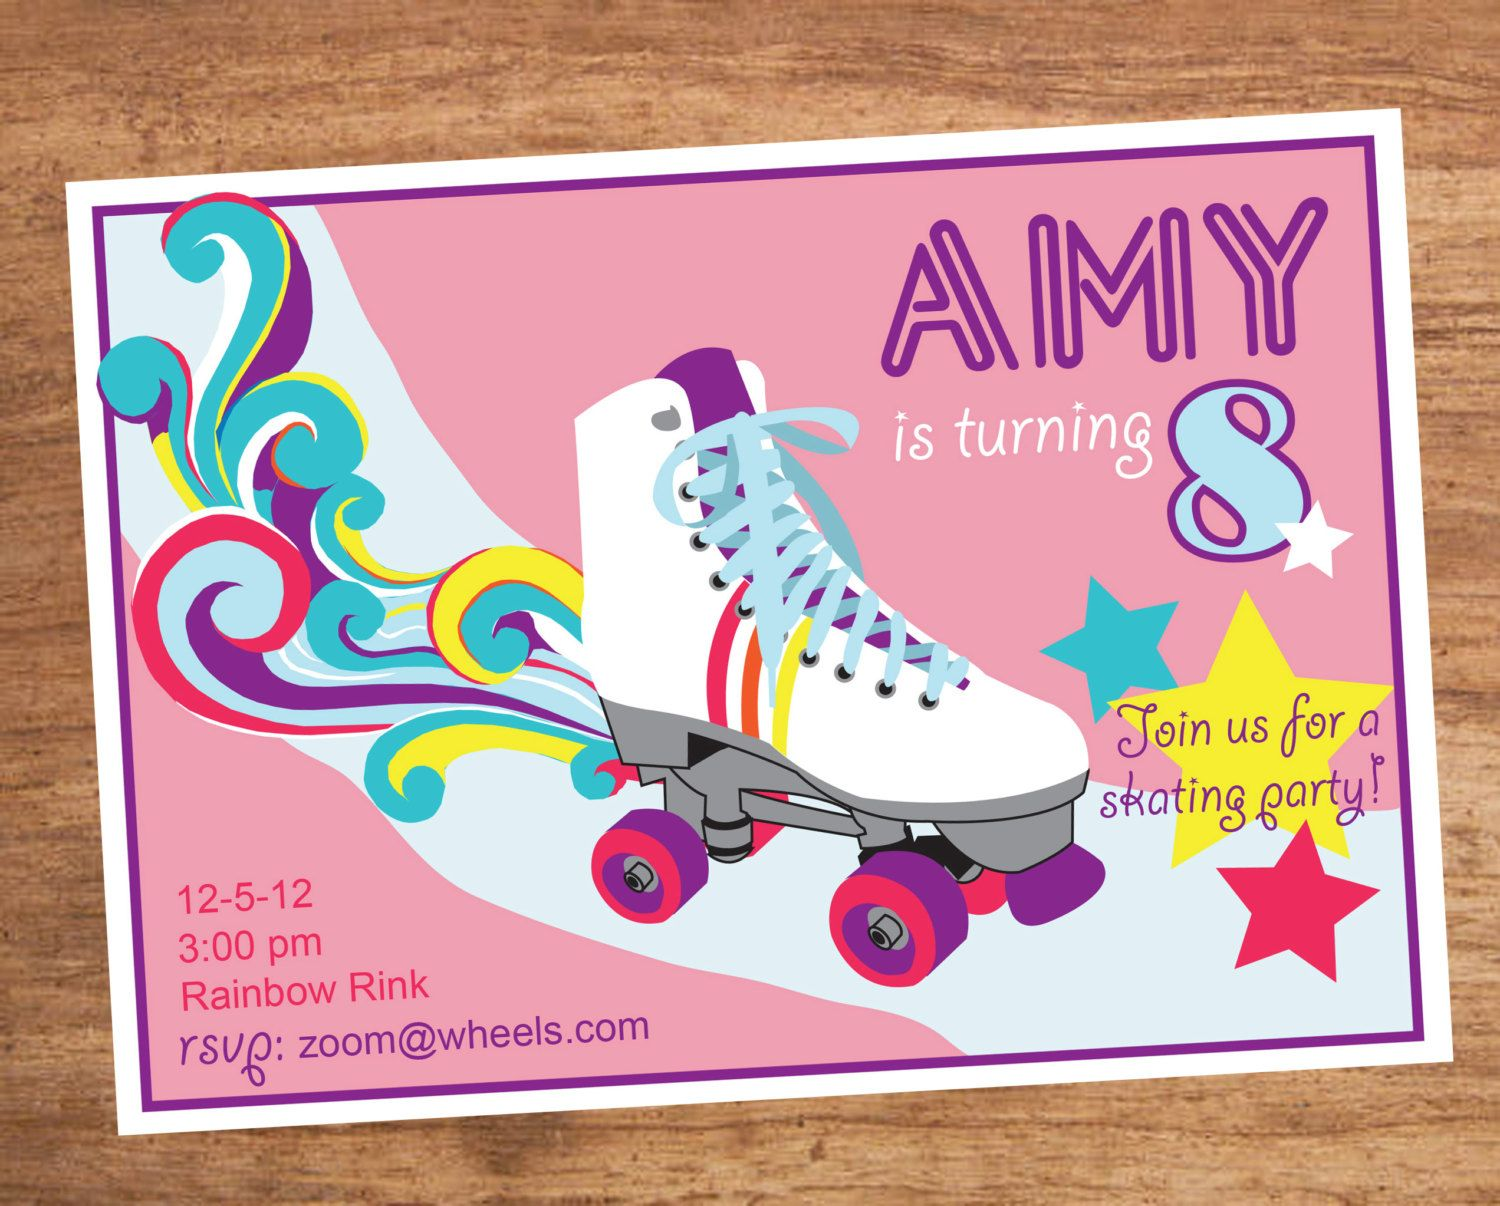 girls roller skating party invitations - Google Search | Lola ...